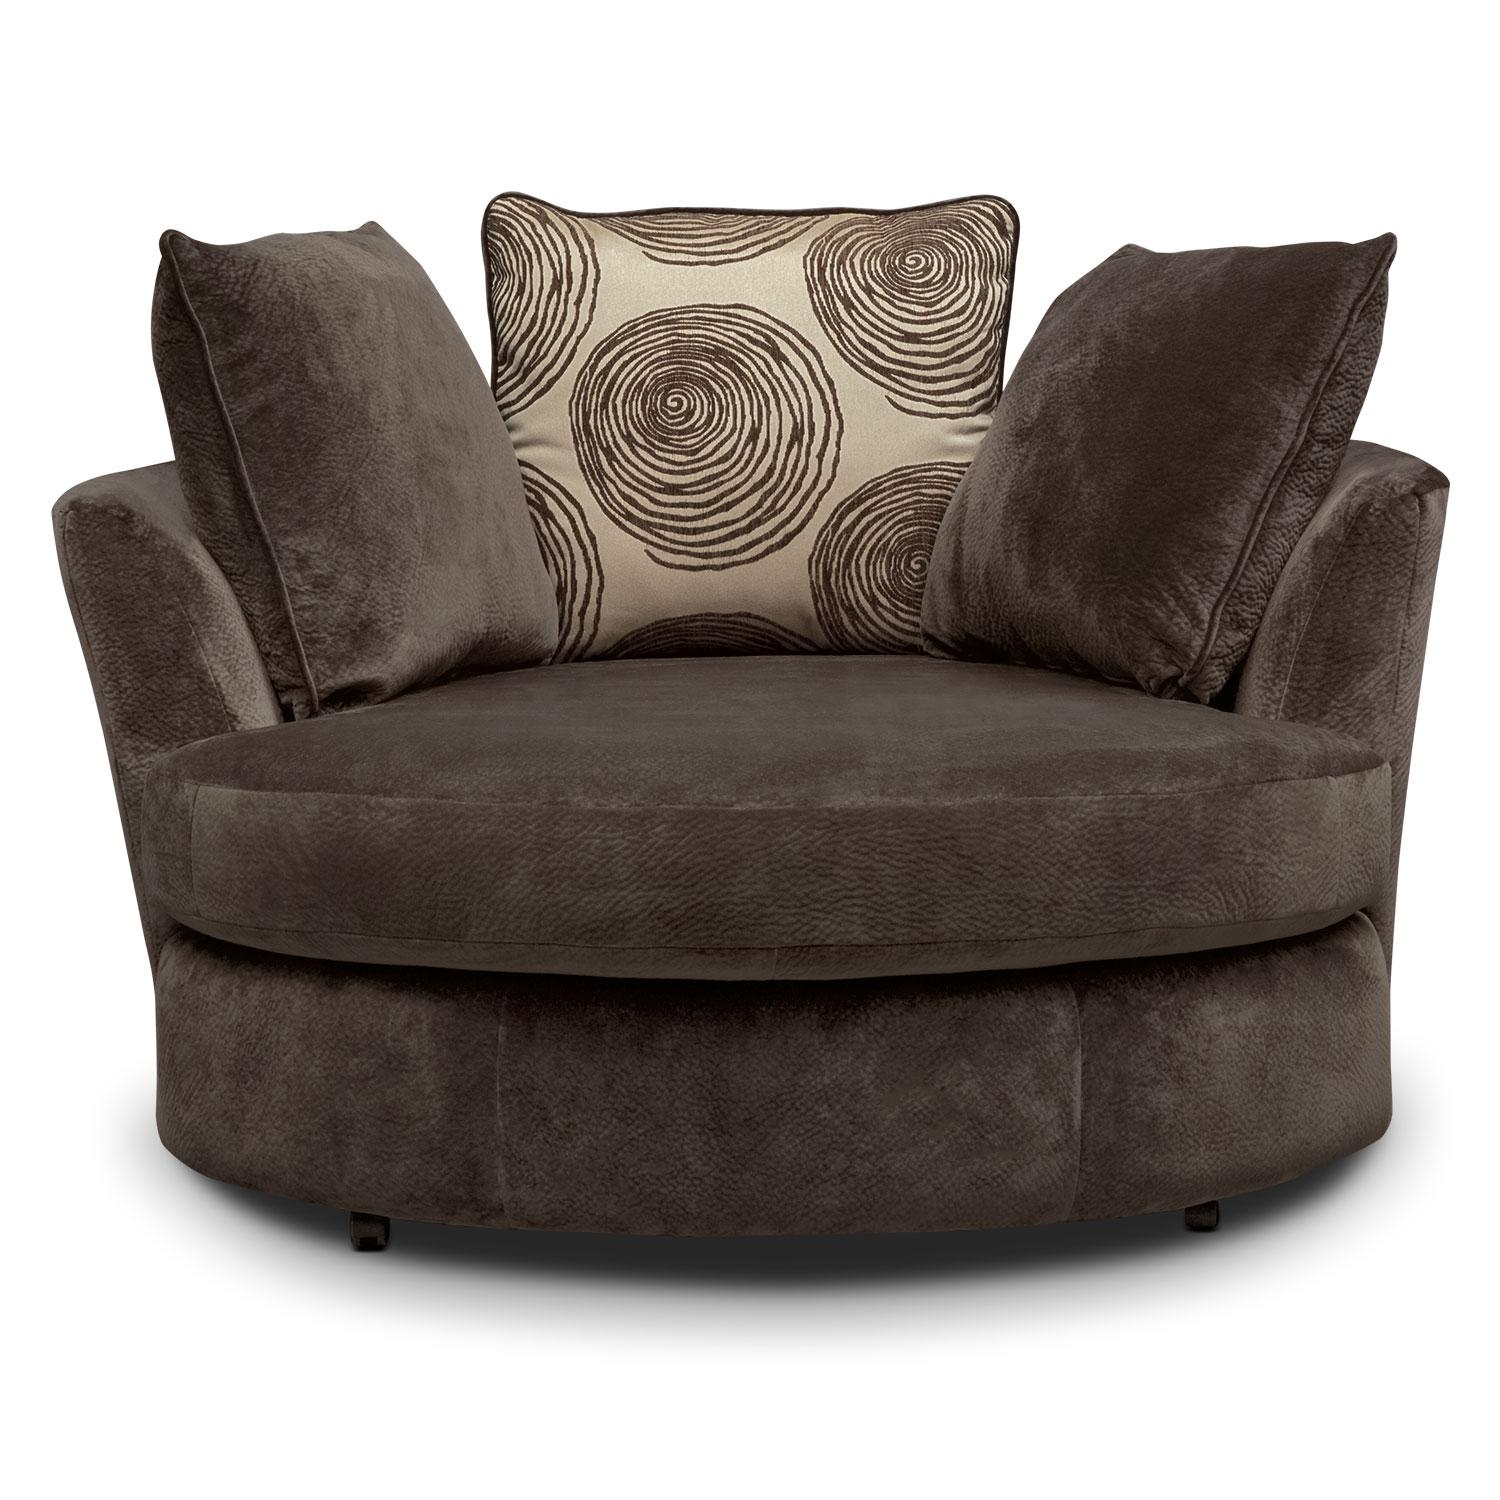 Cordelle Swivel Chair – Chocolate | Value City Furniture Intended For Swivel Sofa Chairs (Image 5 of 20)